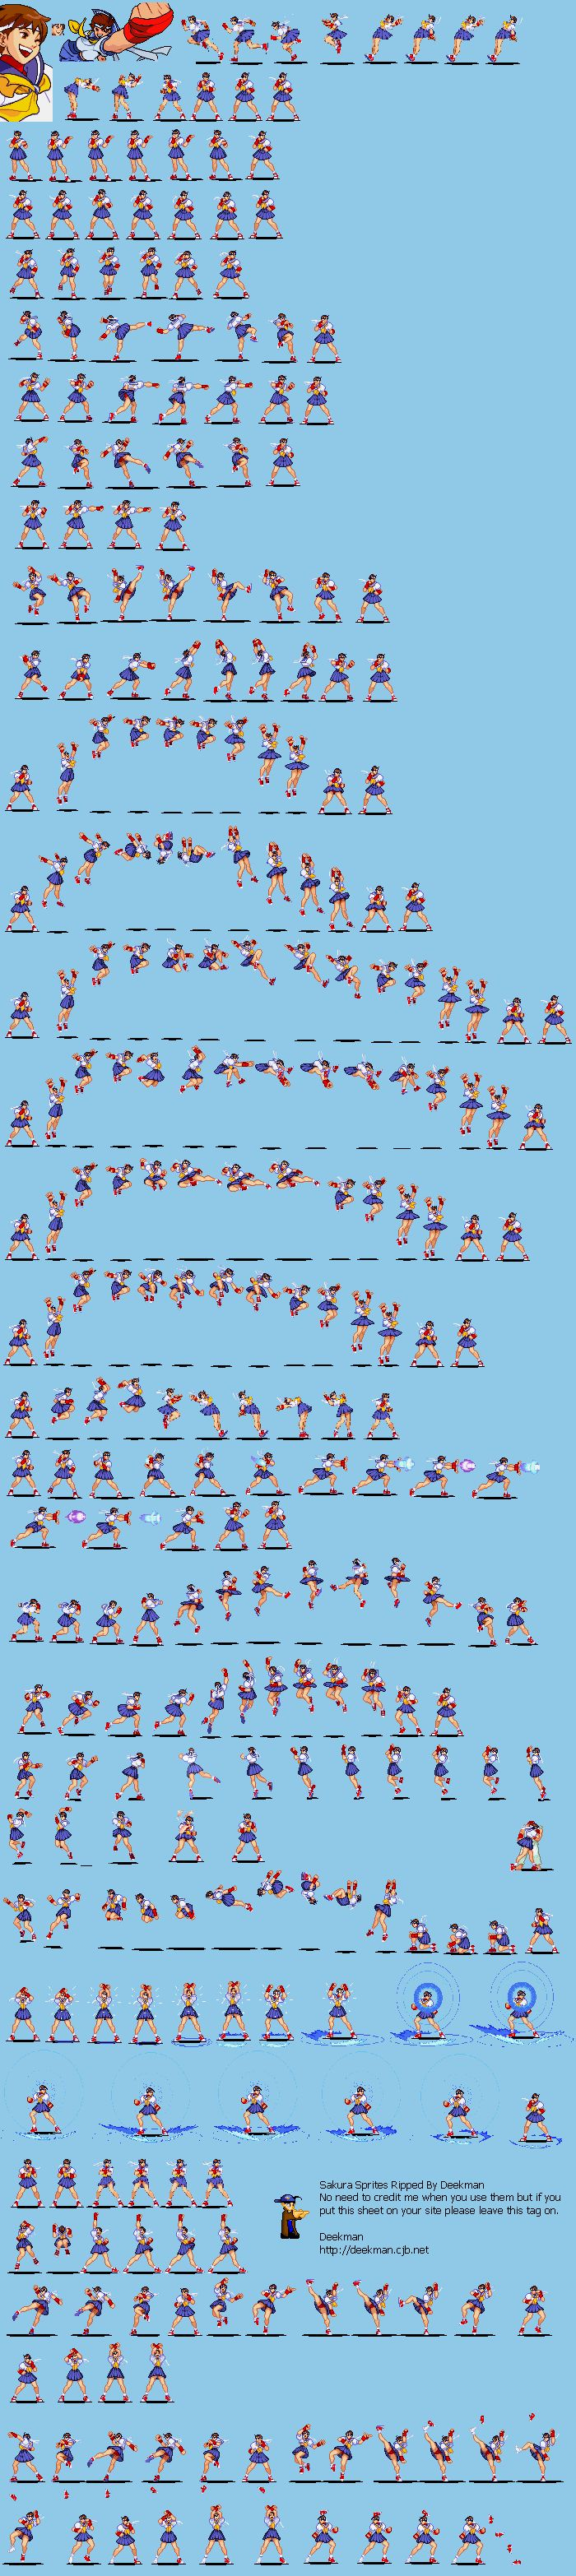 Kens Street Fighter II with animated sprites  CodePen